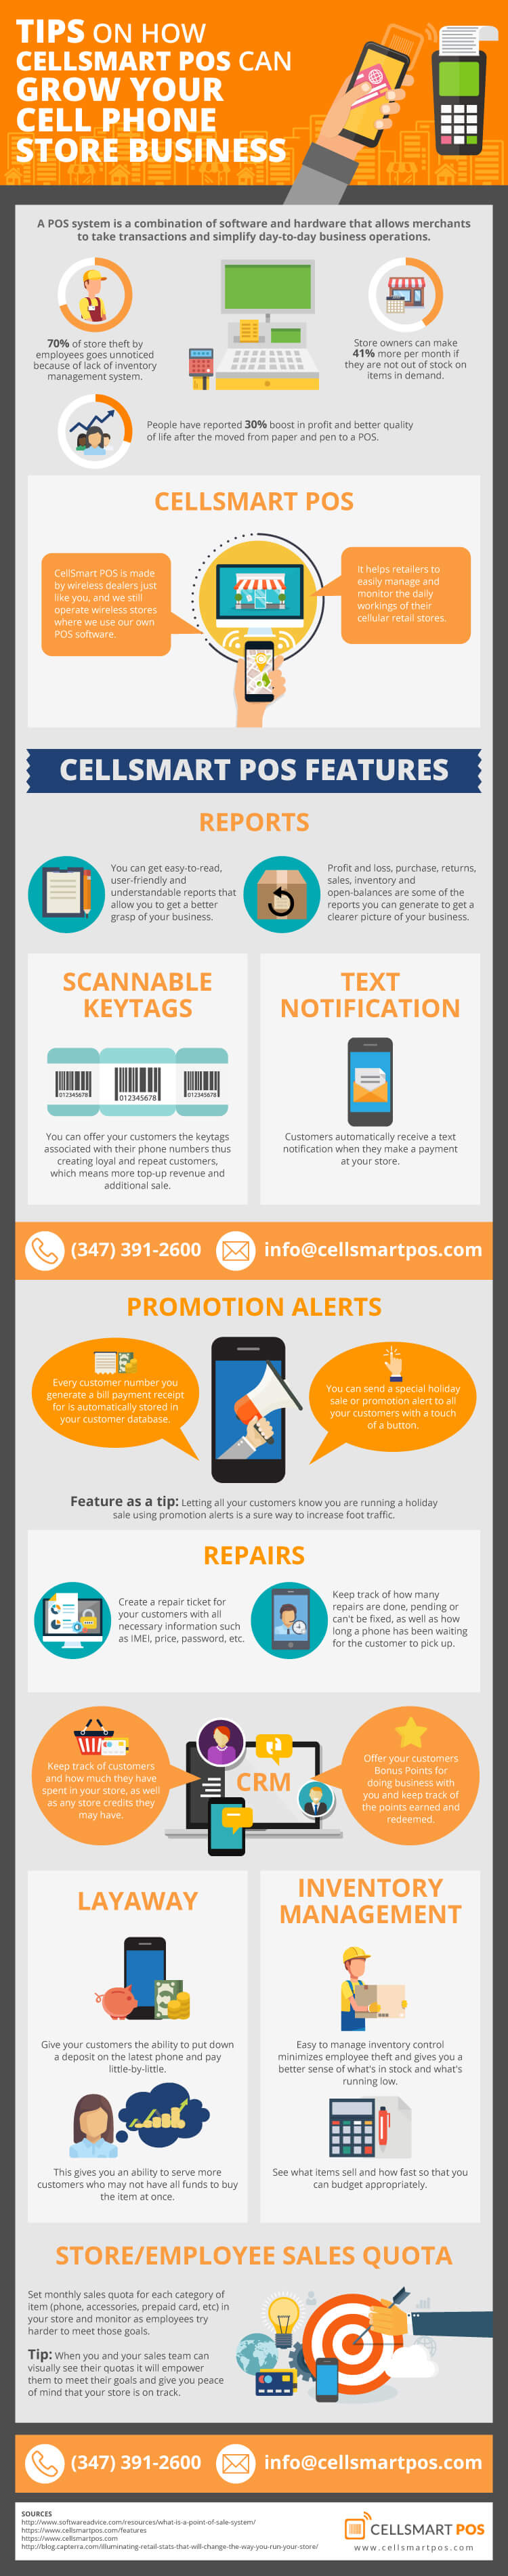 Tips on How CELLSMART POS Can Grow your Cell Phone Store Business